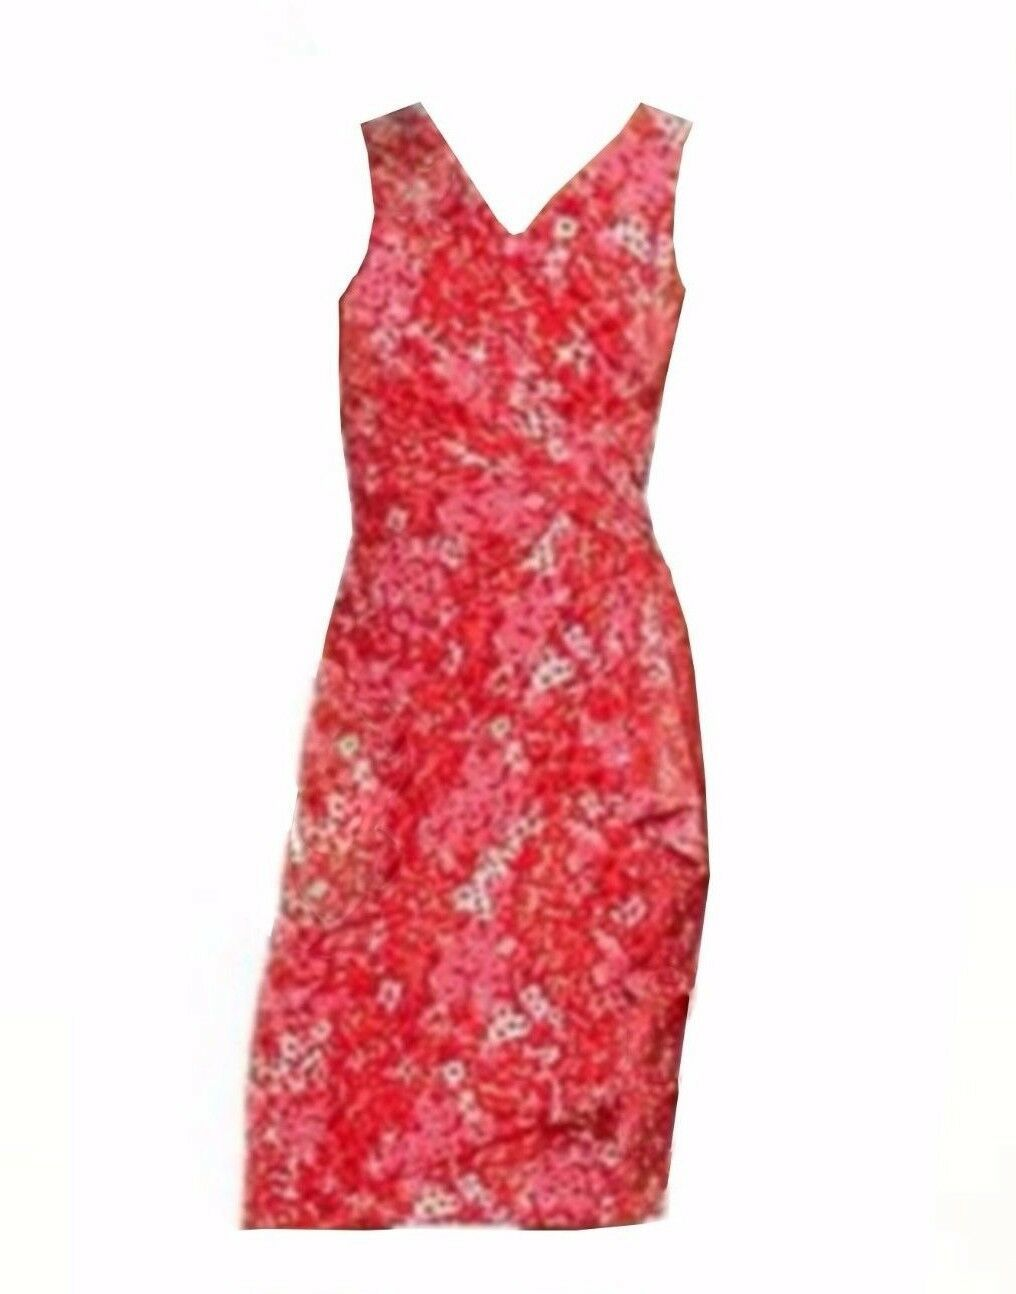 Primary image for Chaps by Ralph Lauren Floral Coral Surplice Ruched Jersey Dress L XL